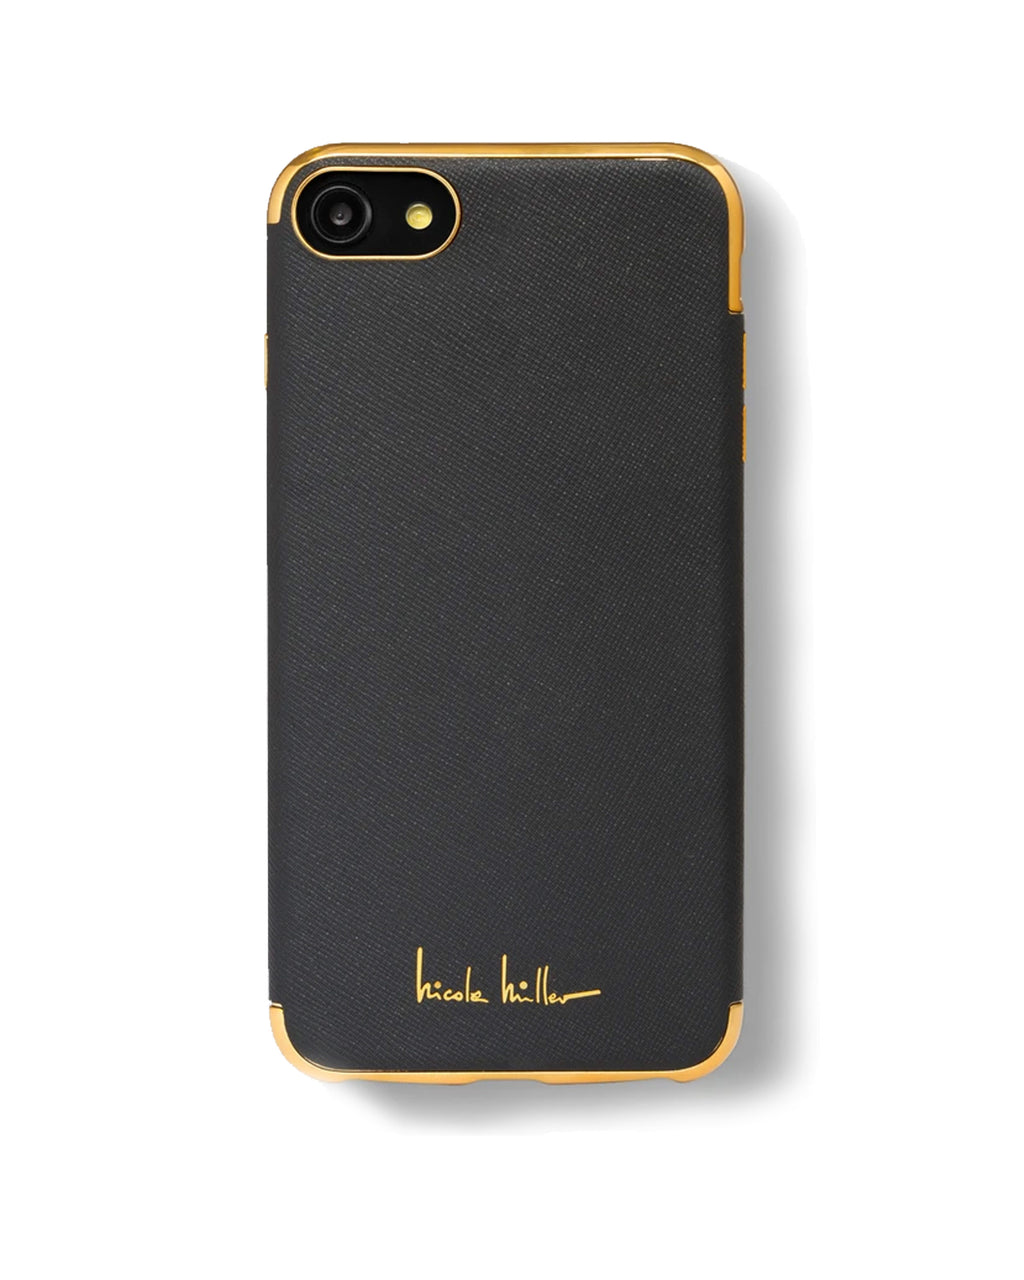 CHCBG02 - IPHONE X CROSSHATCH CASE - accessories - fashion tech - IN A BLACK CROSSHATCH, THIS IPHONE CASE IS A MODERN CLASSIC.